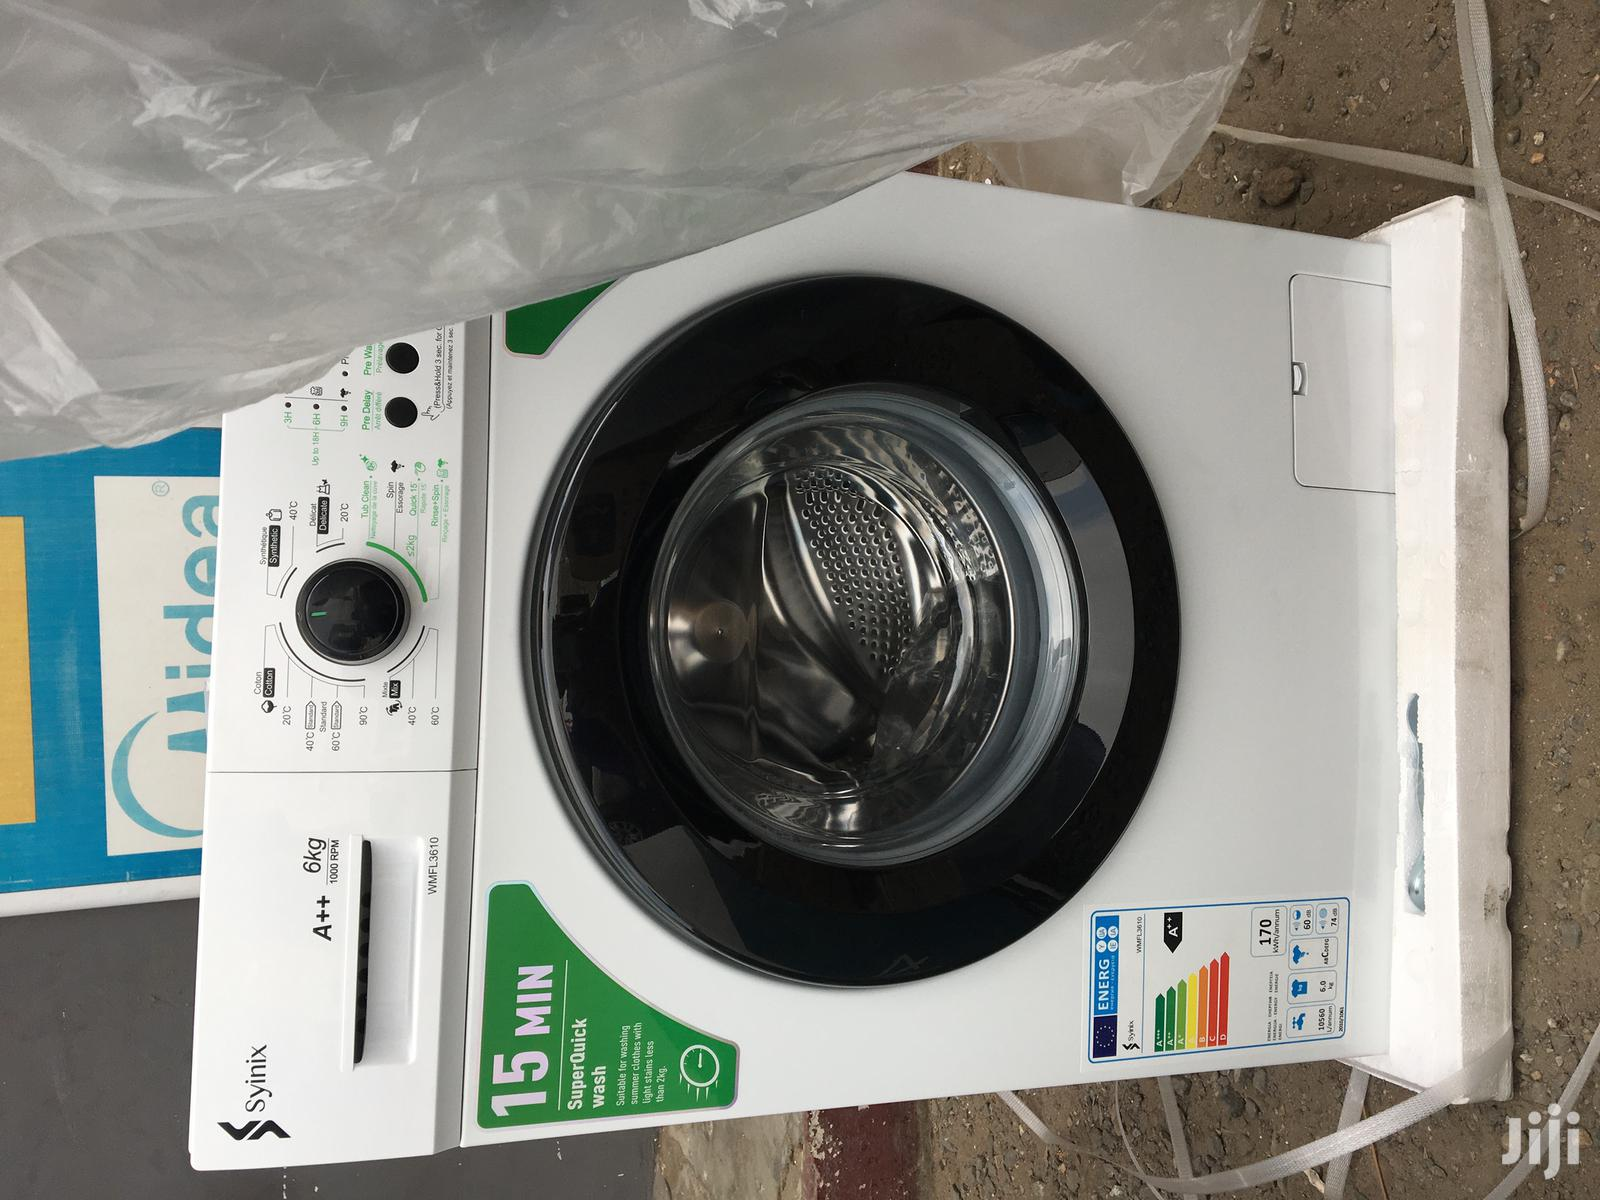 Syinix Washing Machine (S 7610) 6kg | Home Appliances for sale in Adabraka, Greater Accra, Ghana